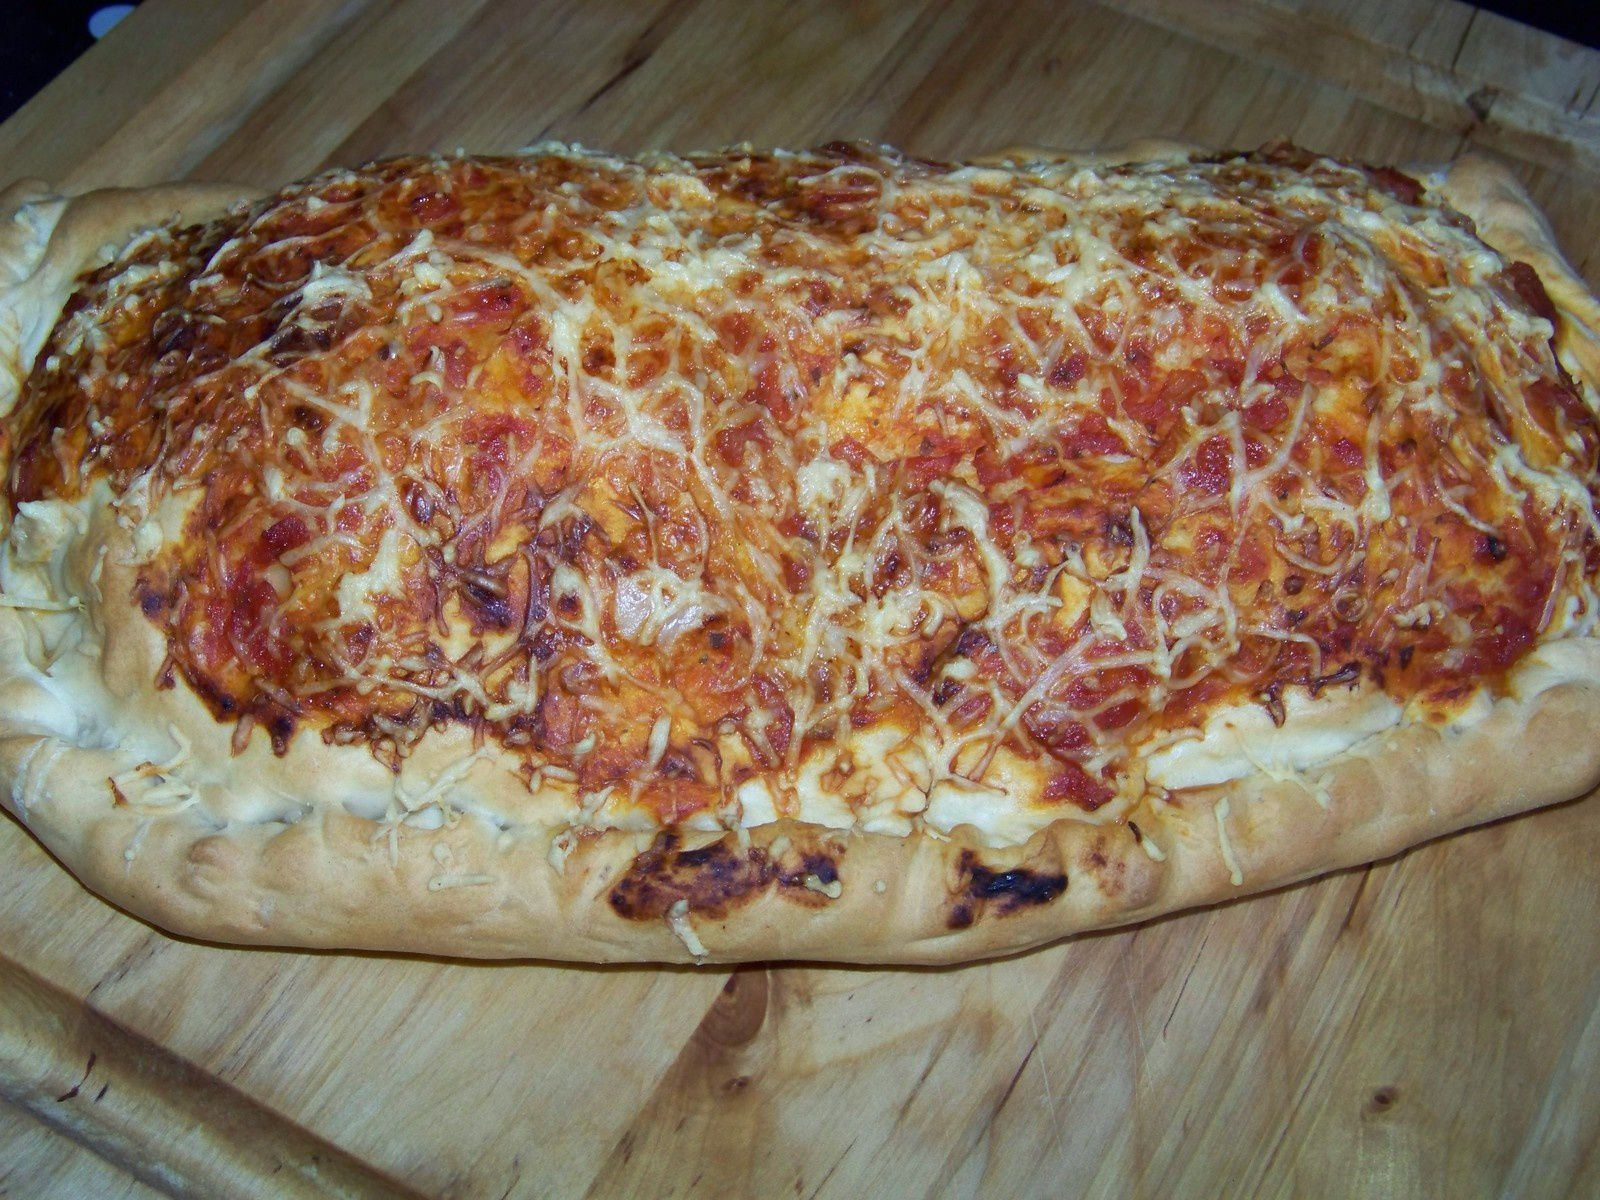 Pizza calzone.